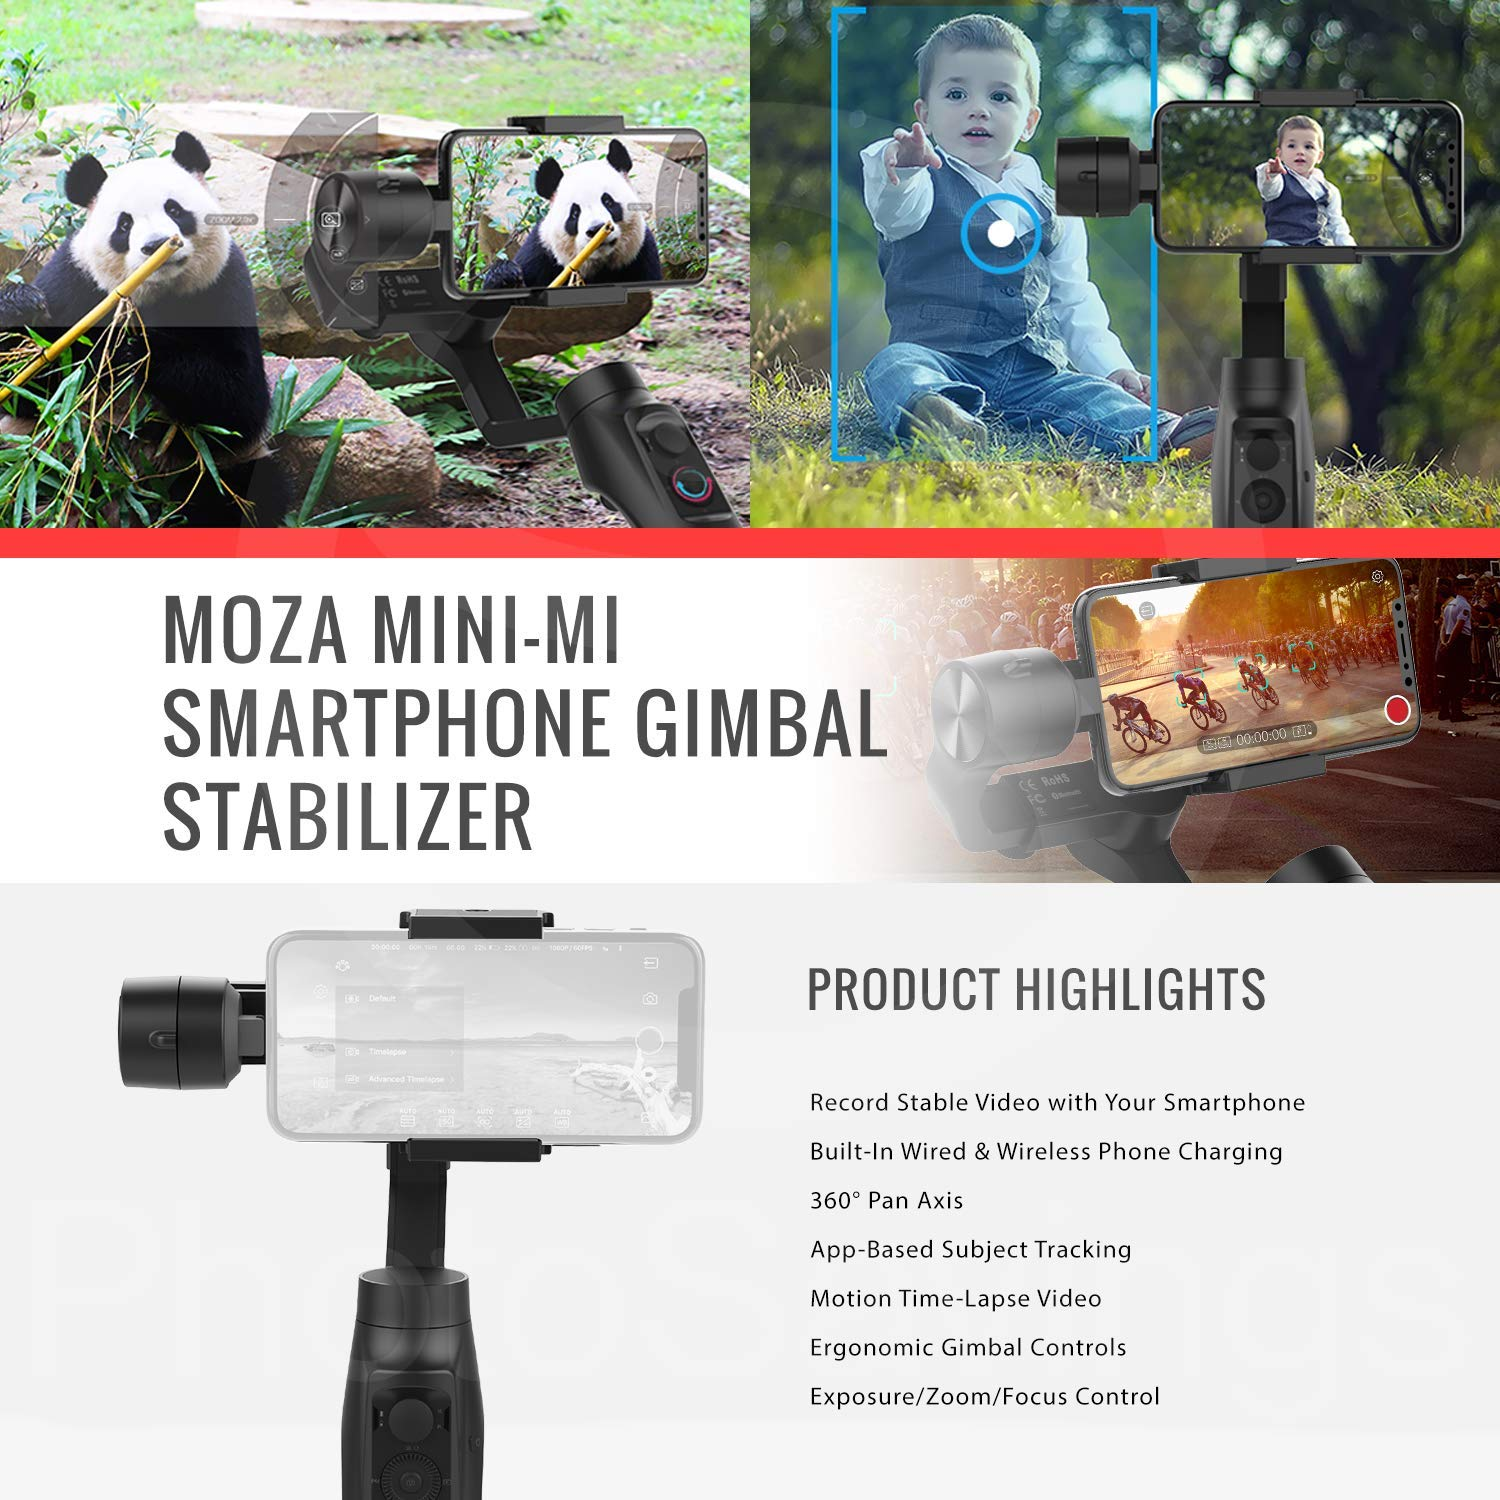 Moza Mini-MI 3-Axis Smartphone Gimbal Stabilizer with Lavalier Microphone Accessory Bundle by MOZA (Image #2)